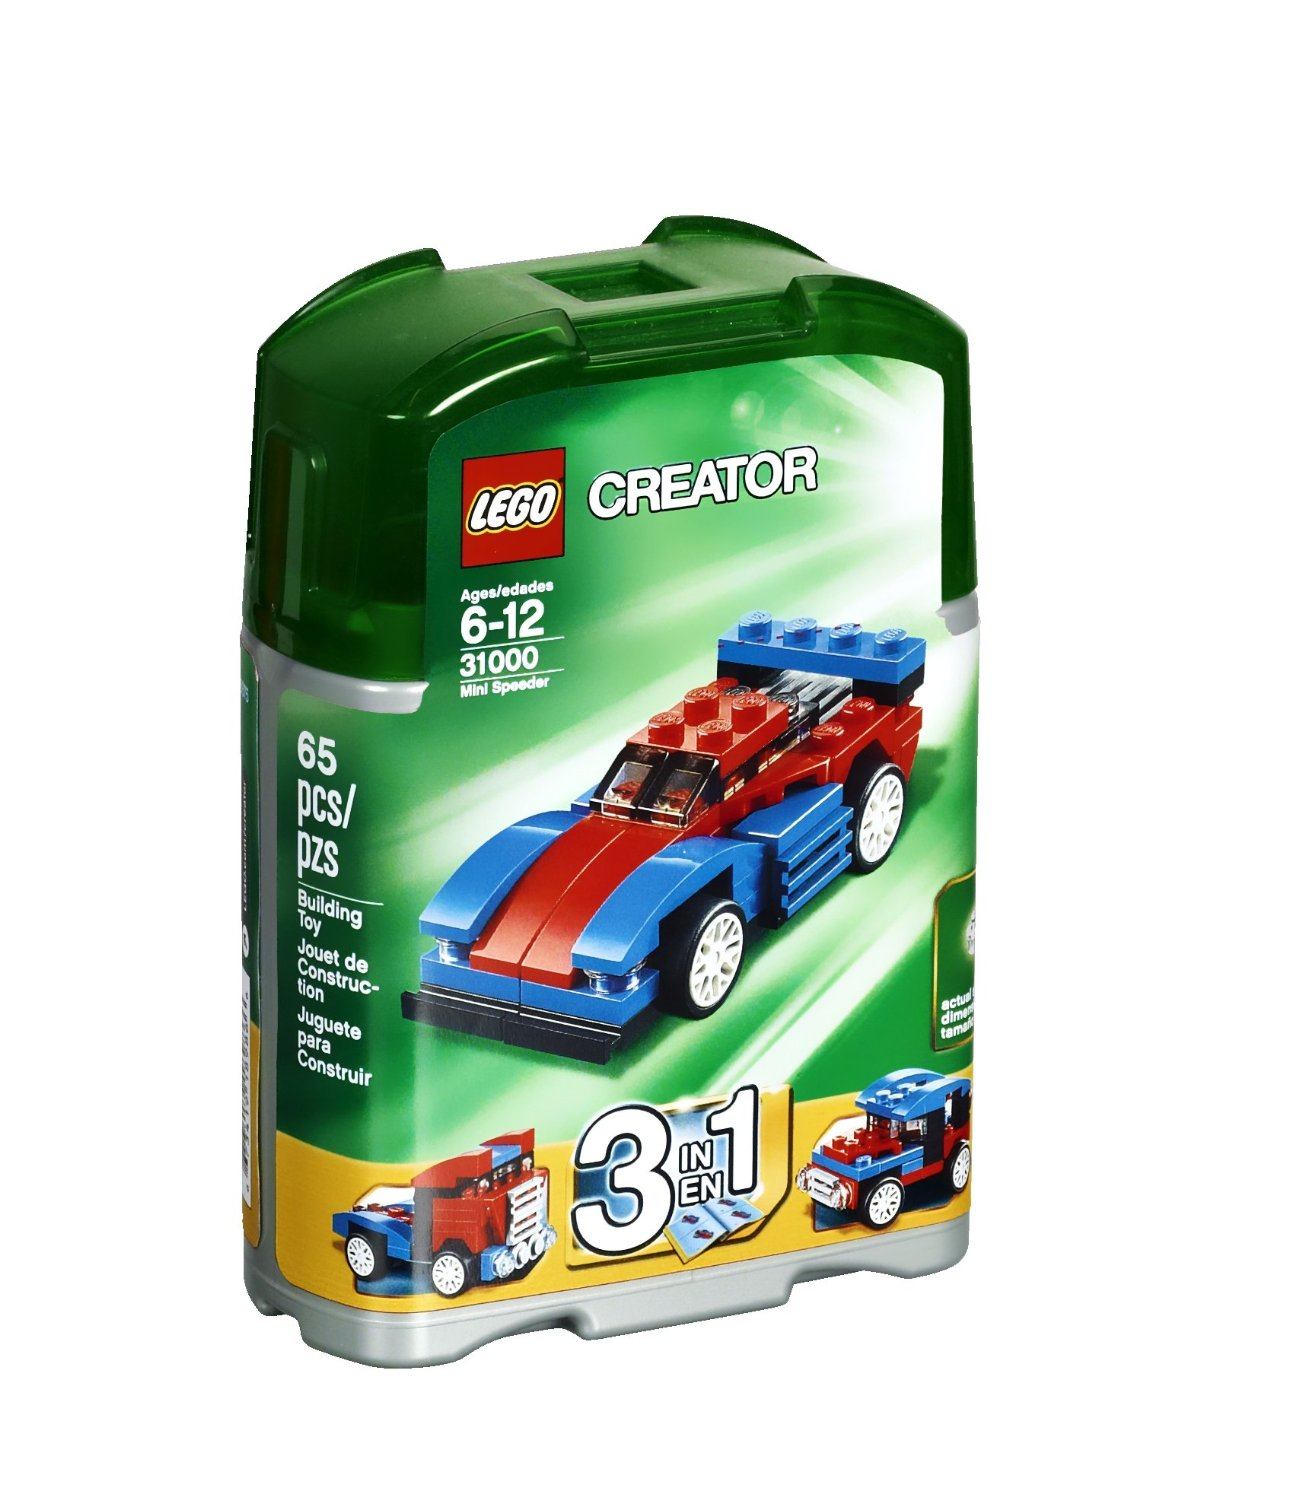 lego creator mini speeder 31000 my lego style. Black Bedroom Furniture Sets. Home Design Ideas